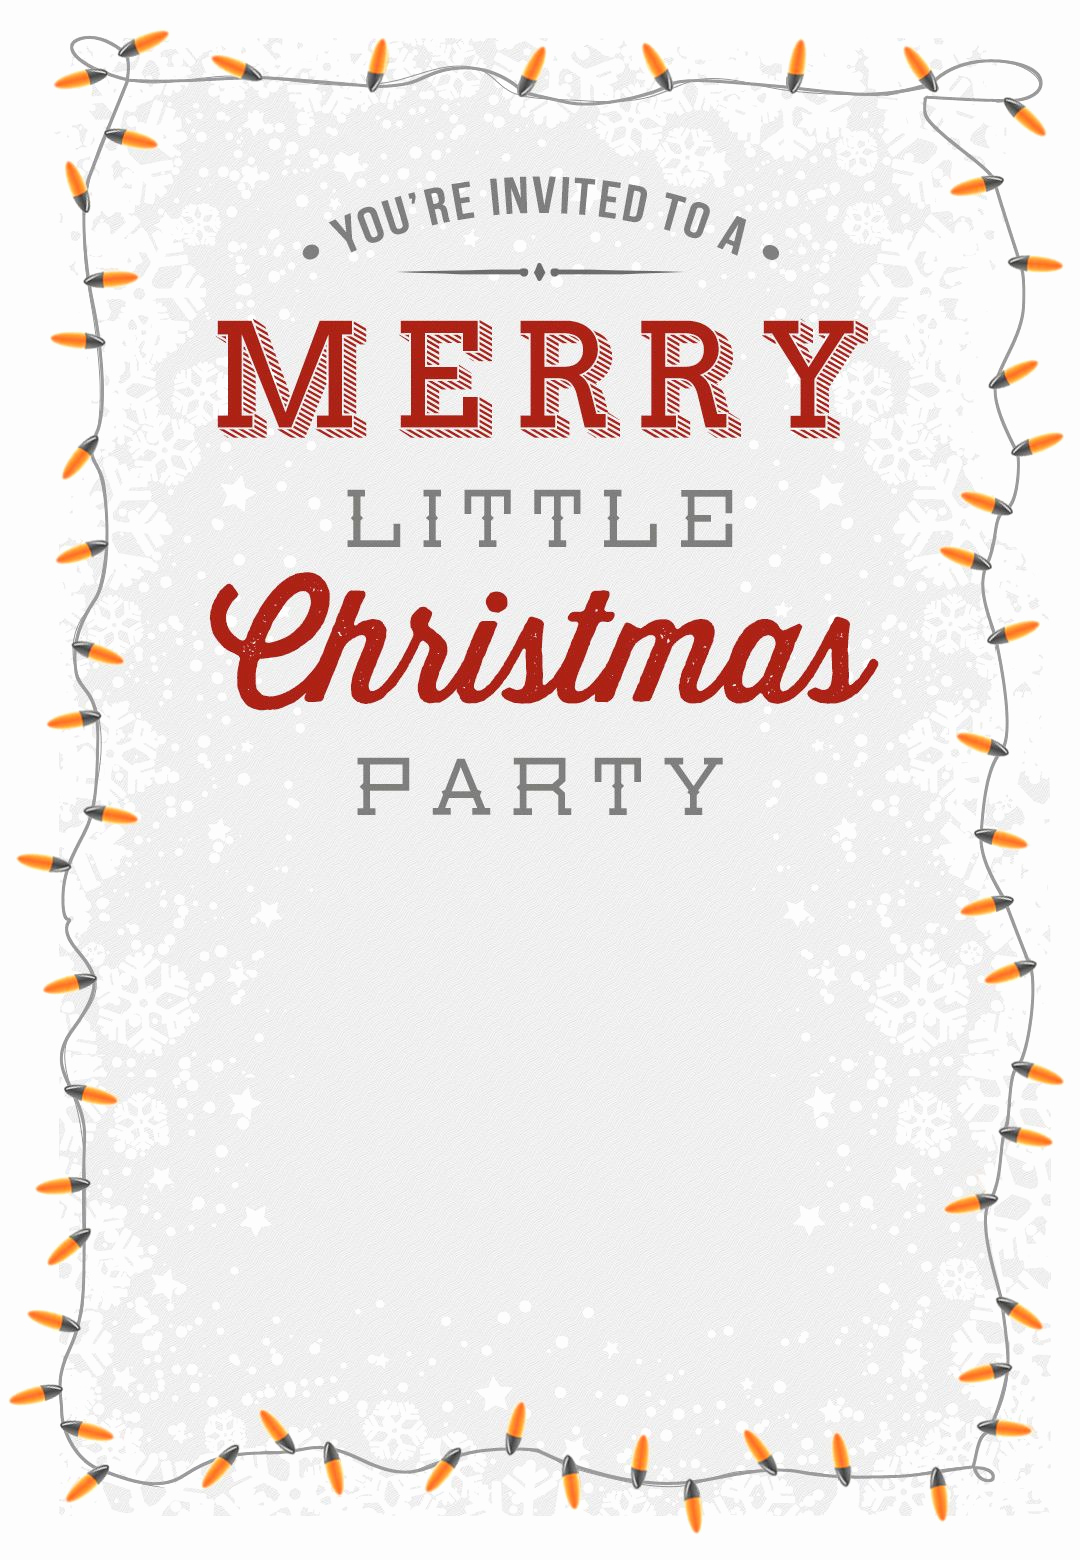 Free Printable Birthday Invitation Templates Awesome A Merry Little Party Free Printable Christmas Invitation